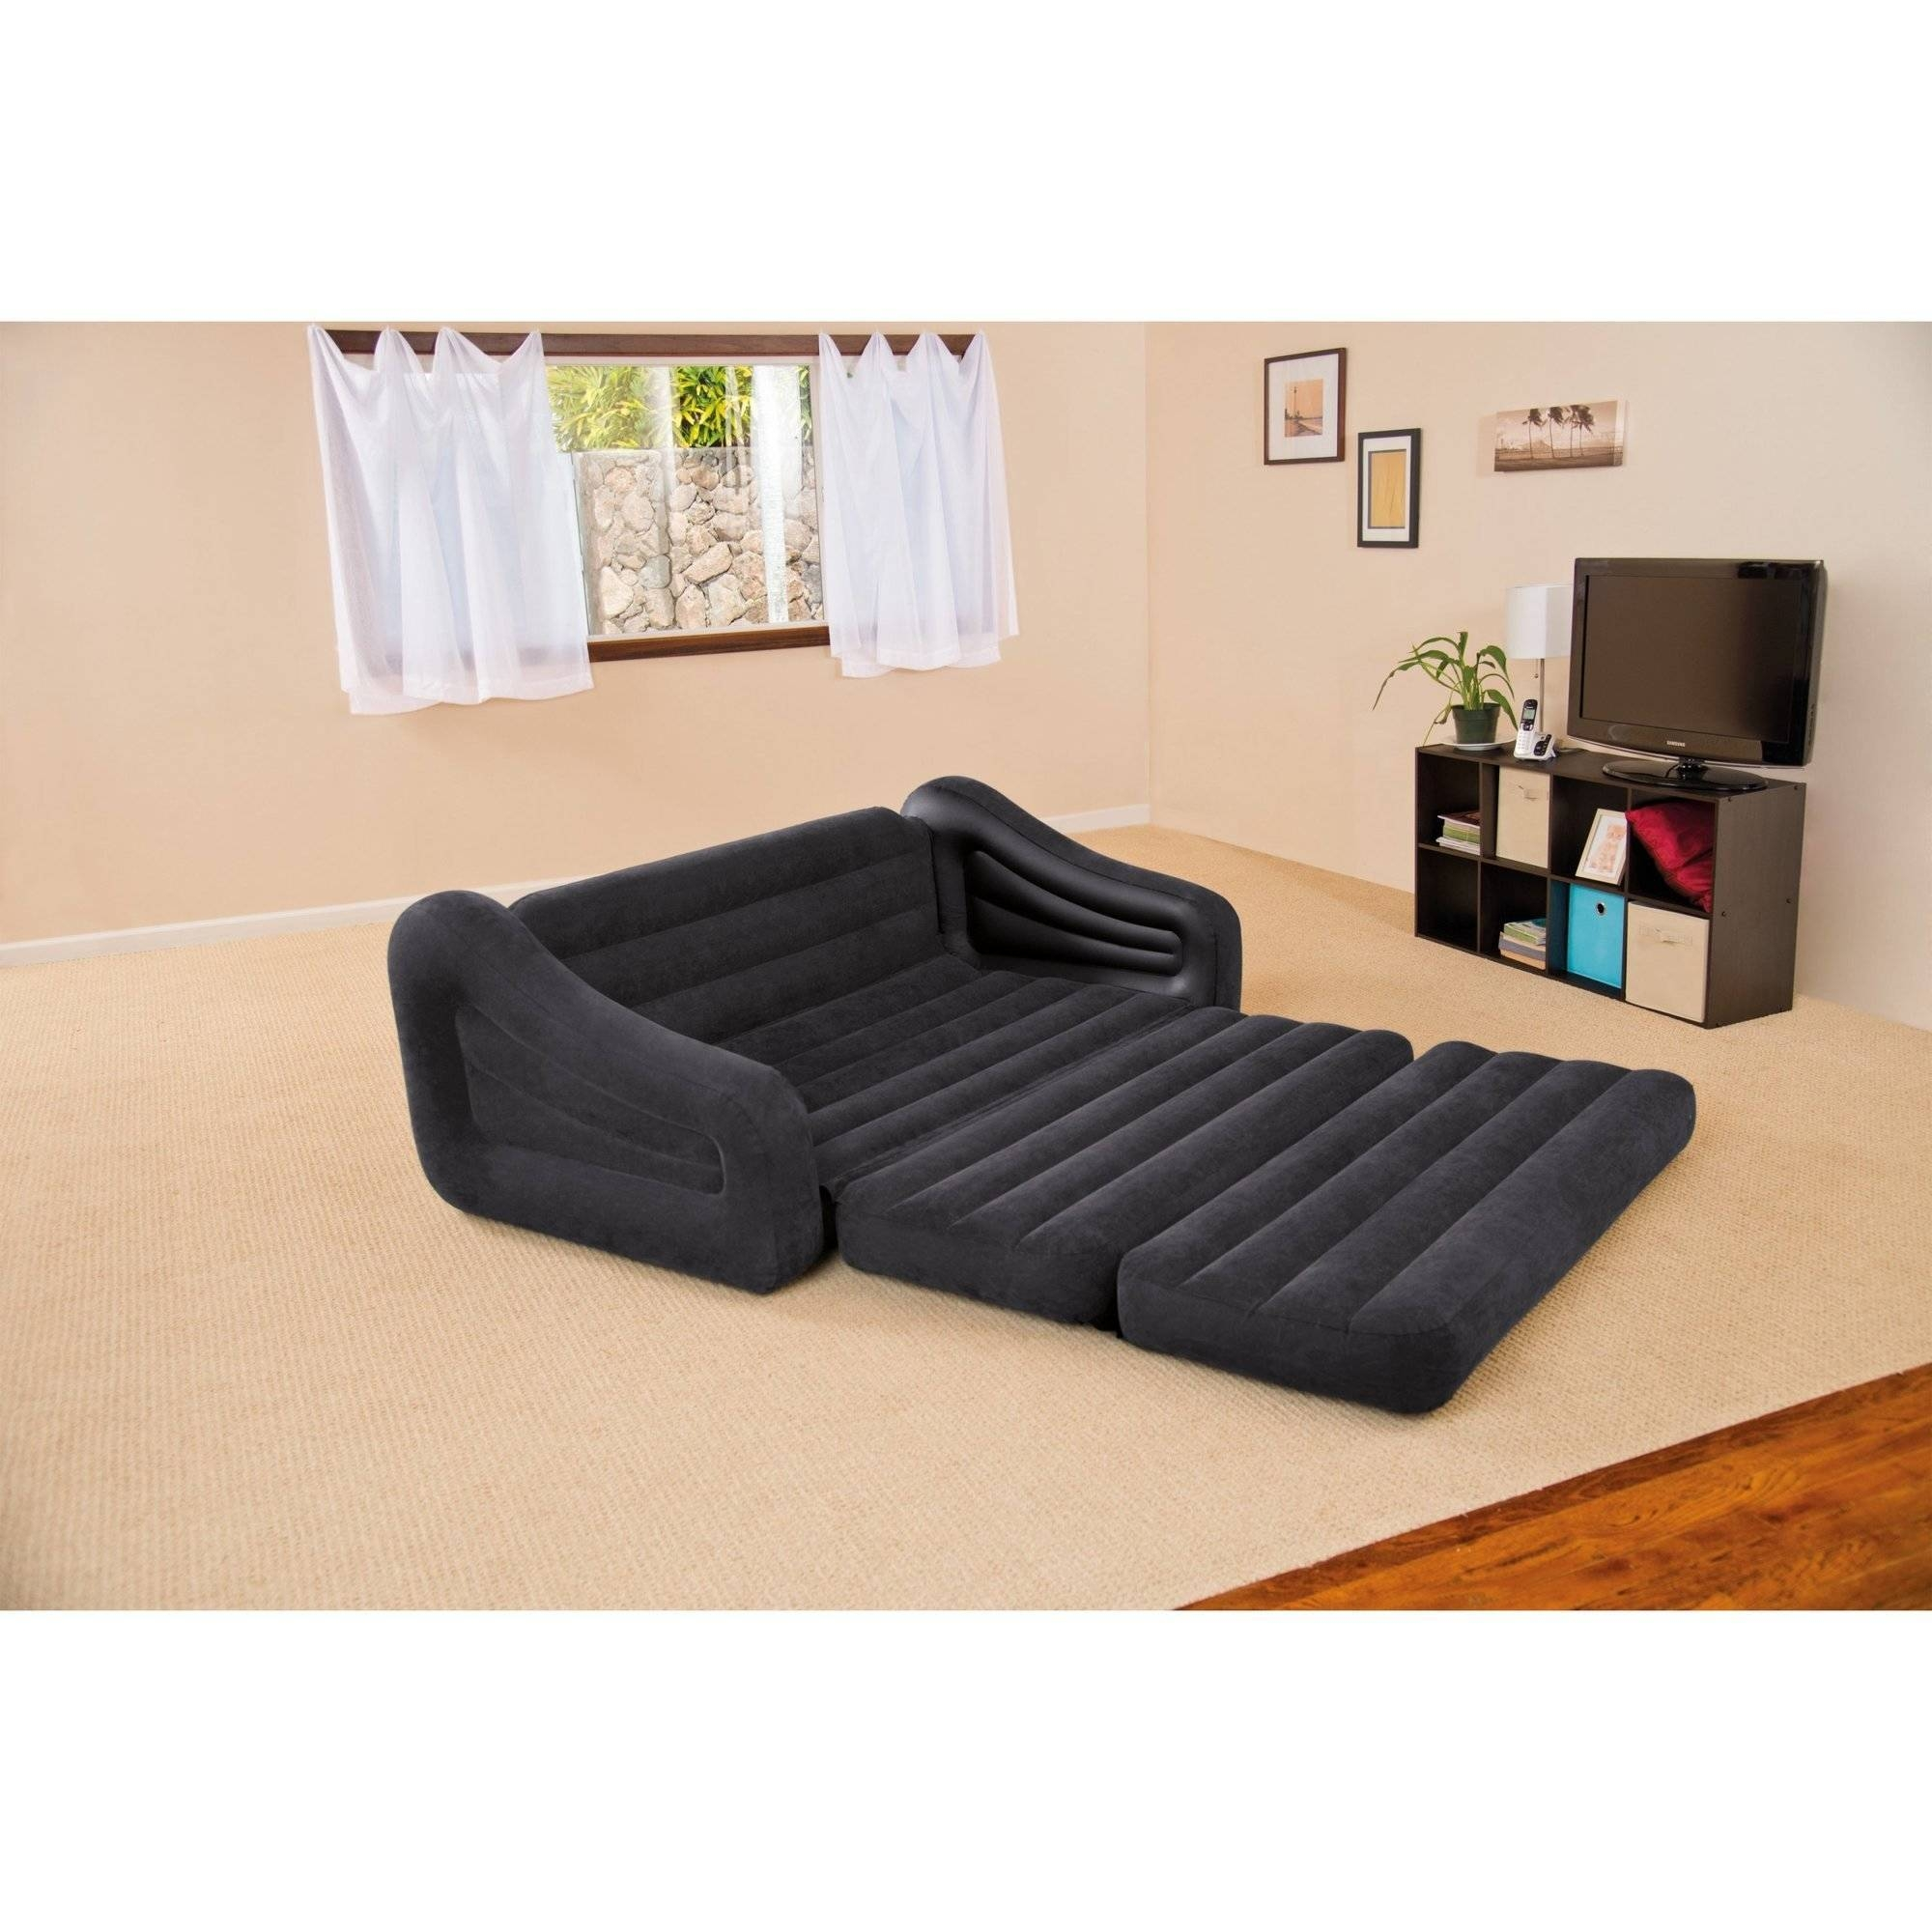 Intex Queen Inflatable Pull Out Sofa Bed - Walmart inside Wallmart Sofa (Image 14 of 25)